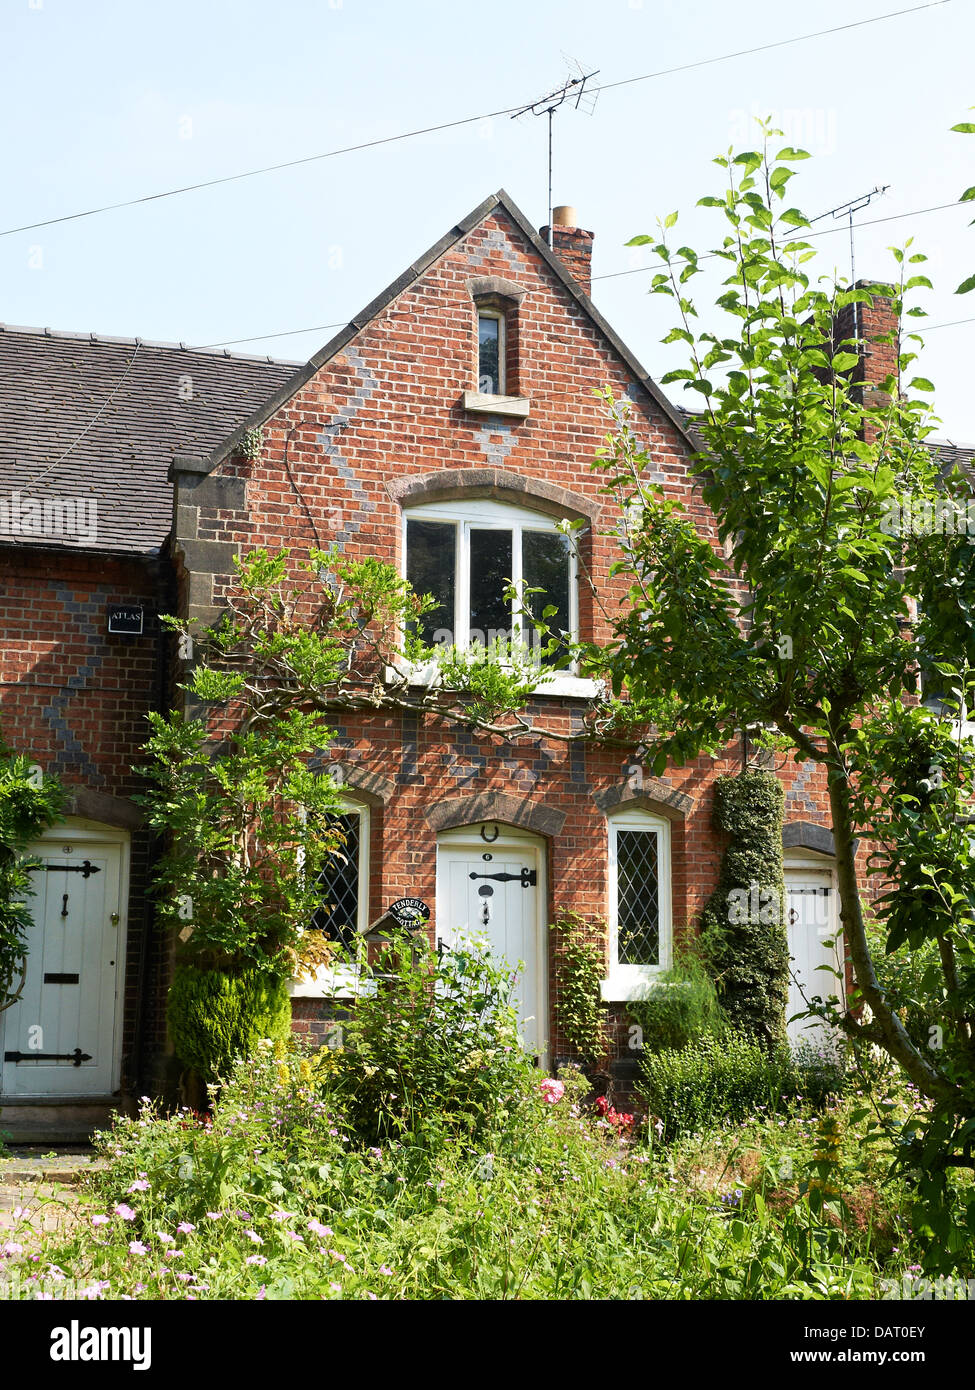 Tenderly cottage with garden in Sandbach Cheshire UK - Stock Image